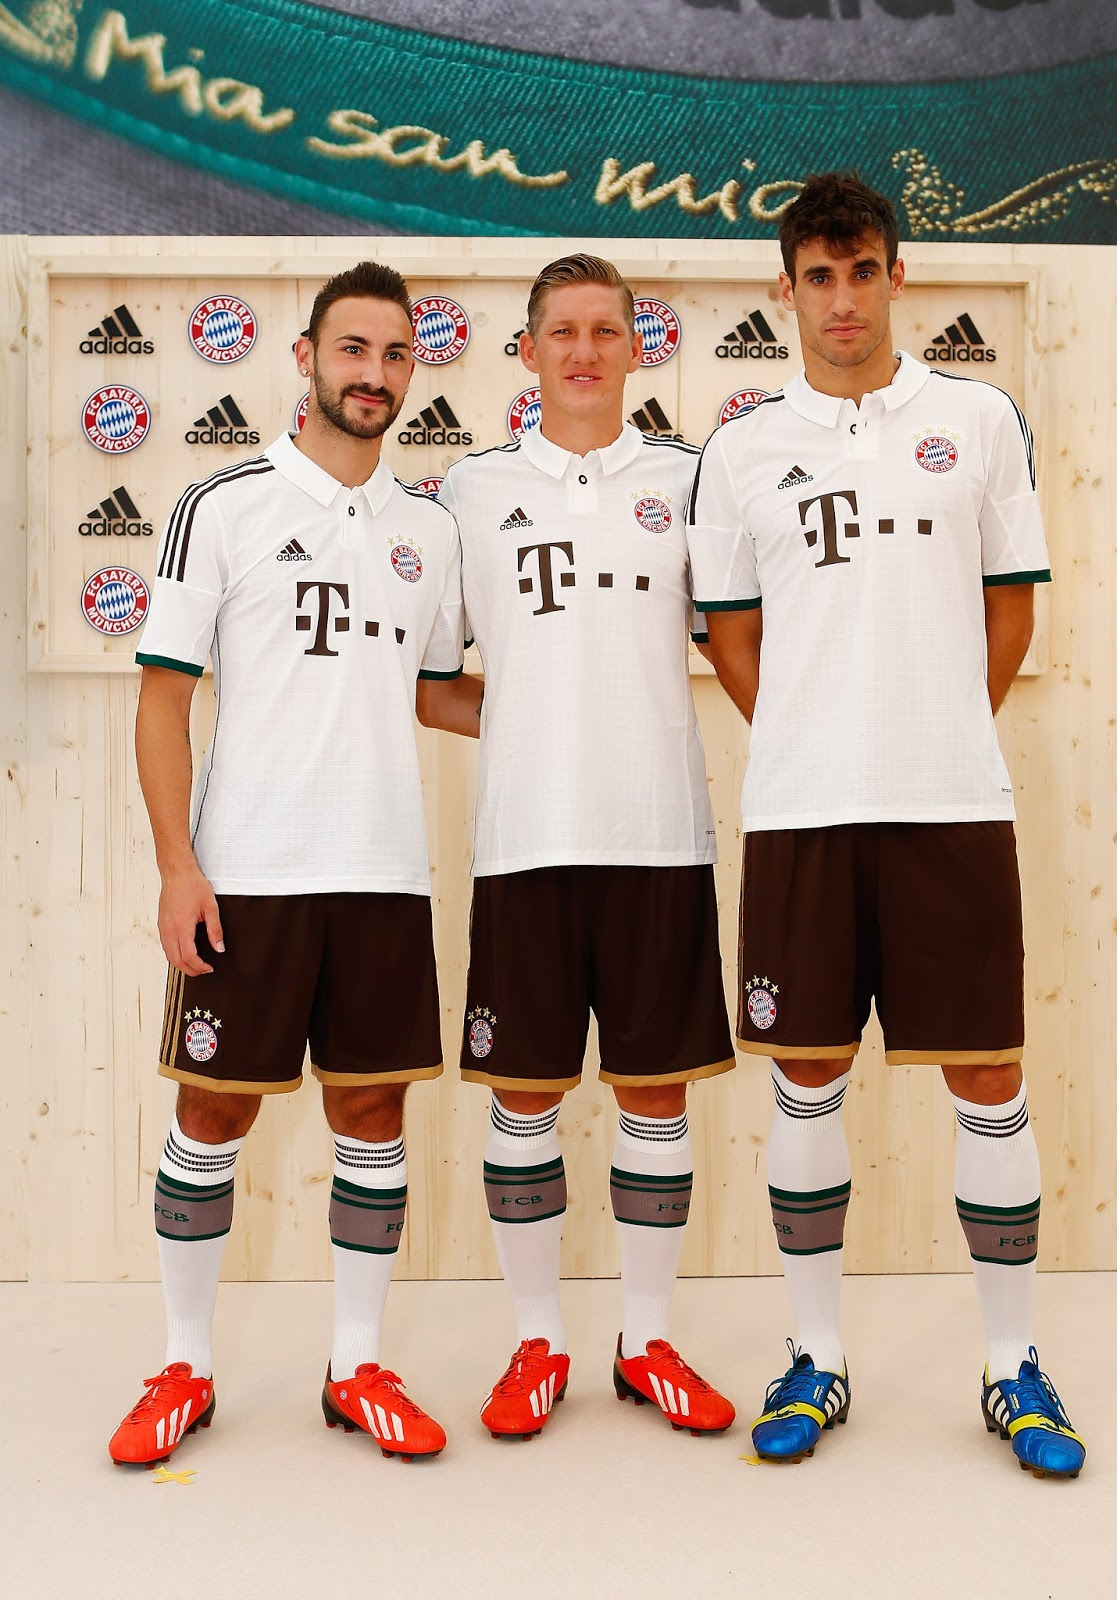 The new kit presented in Munich today by the club s supplier adidas and the  record-holding champions is based on the motto